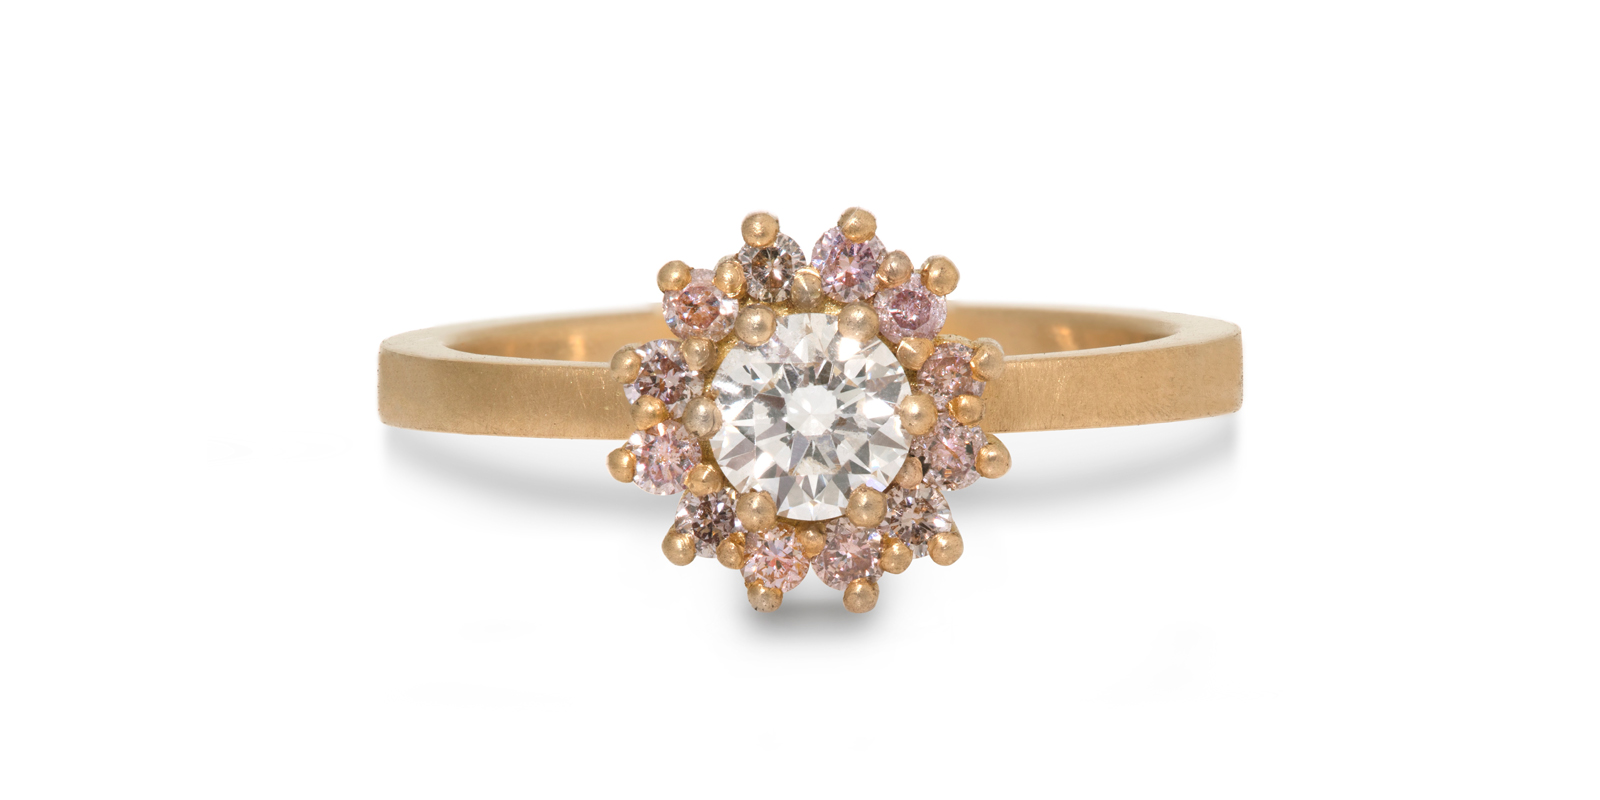 Juliet Pink Diamond Engagement Ring